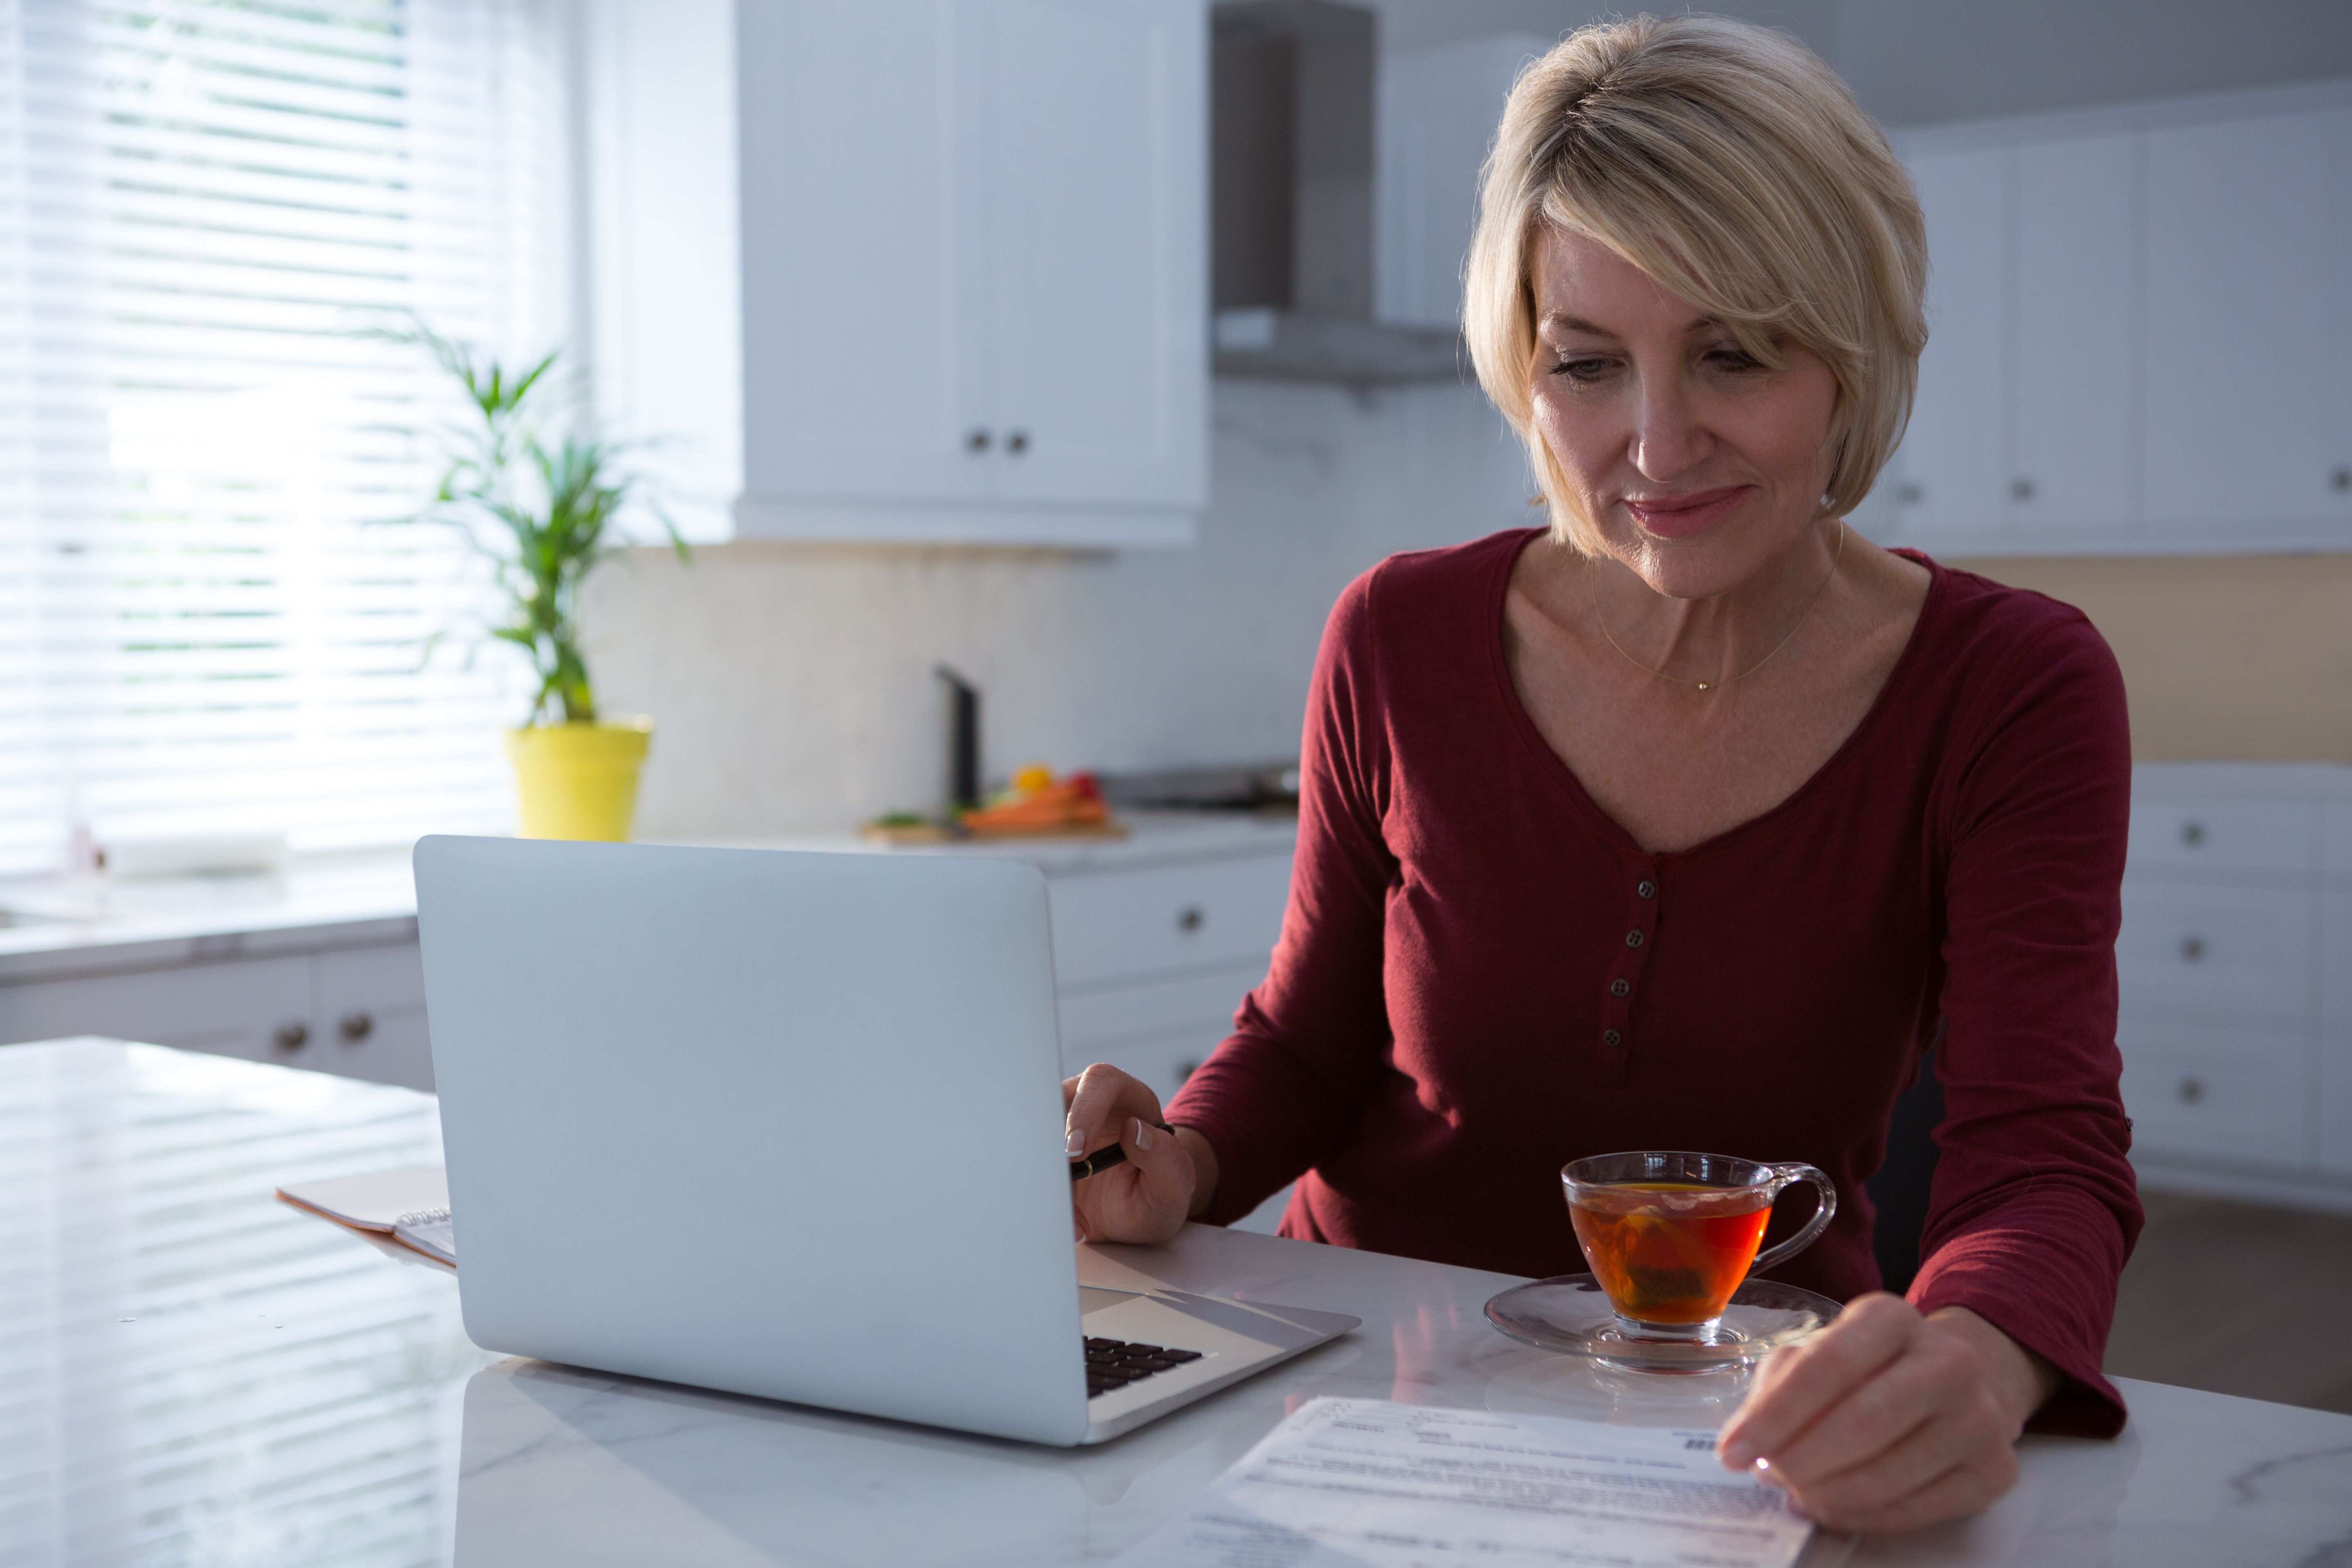 person working remotely from home in kitchen with laptop